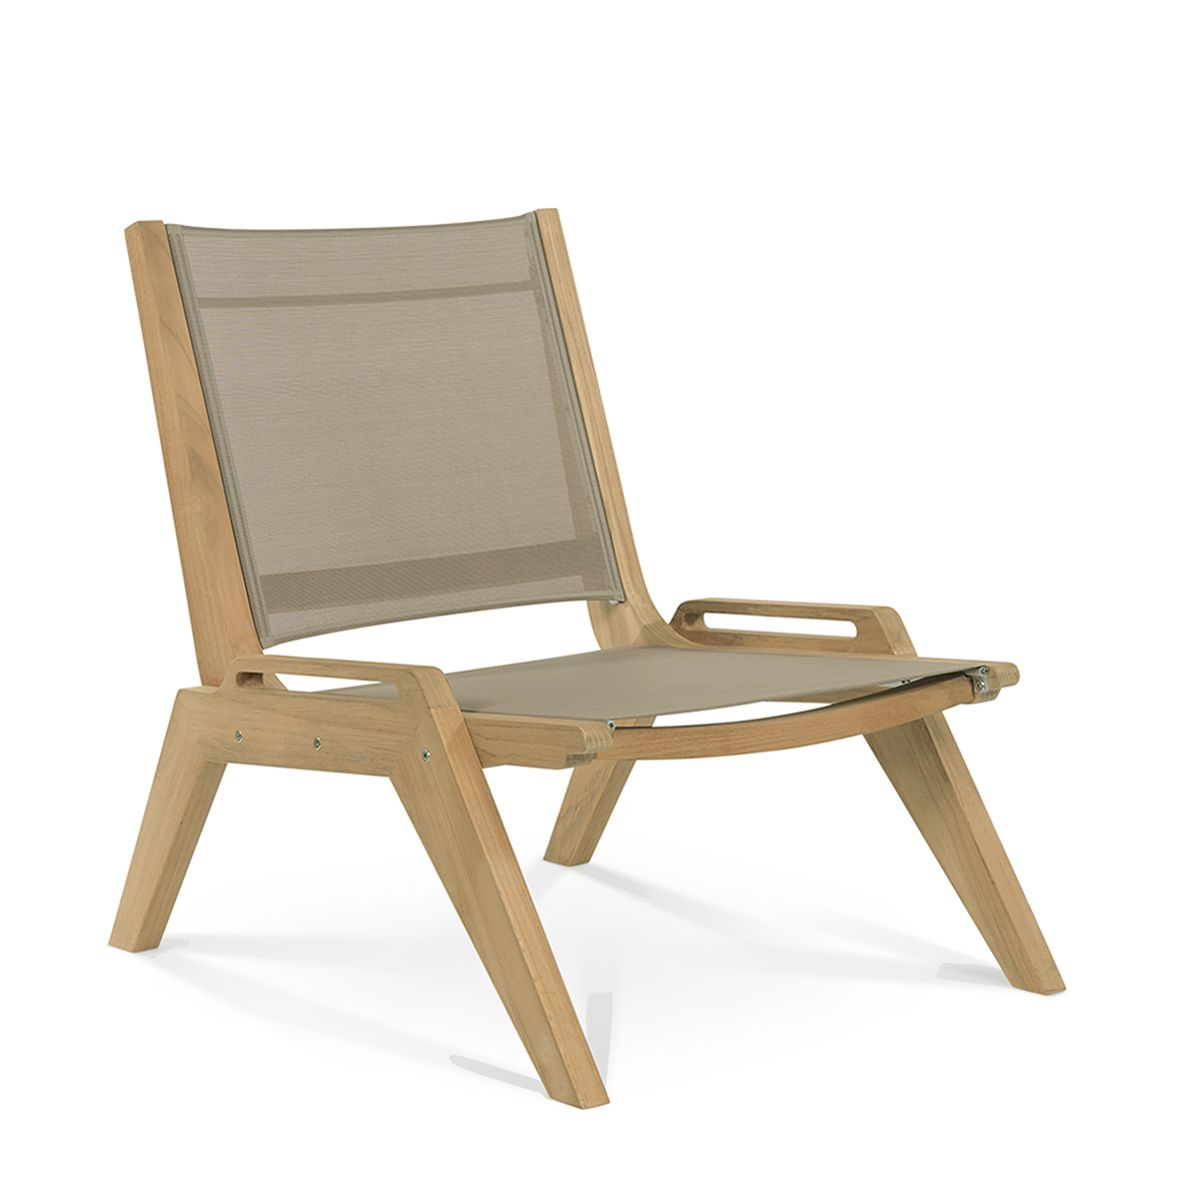 Teak Stacking Chair With Outdoor Sling Outdoor Furniture Teak Furniture Outdoor Chairs